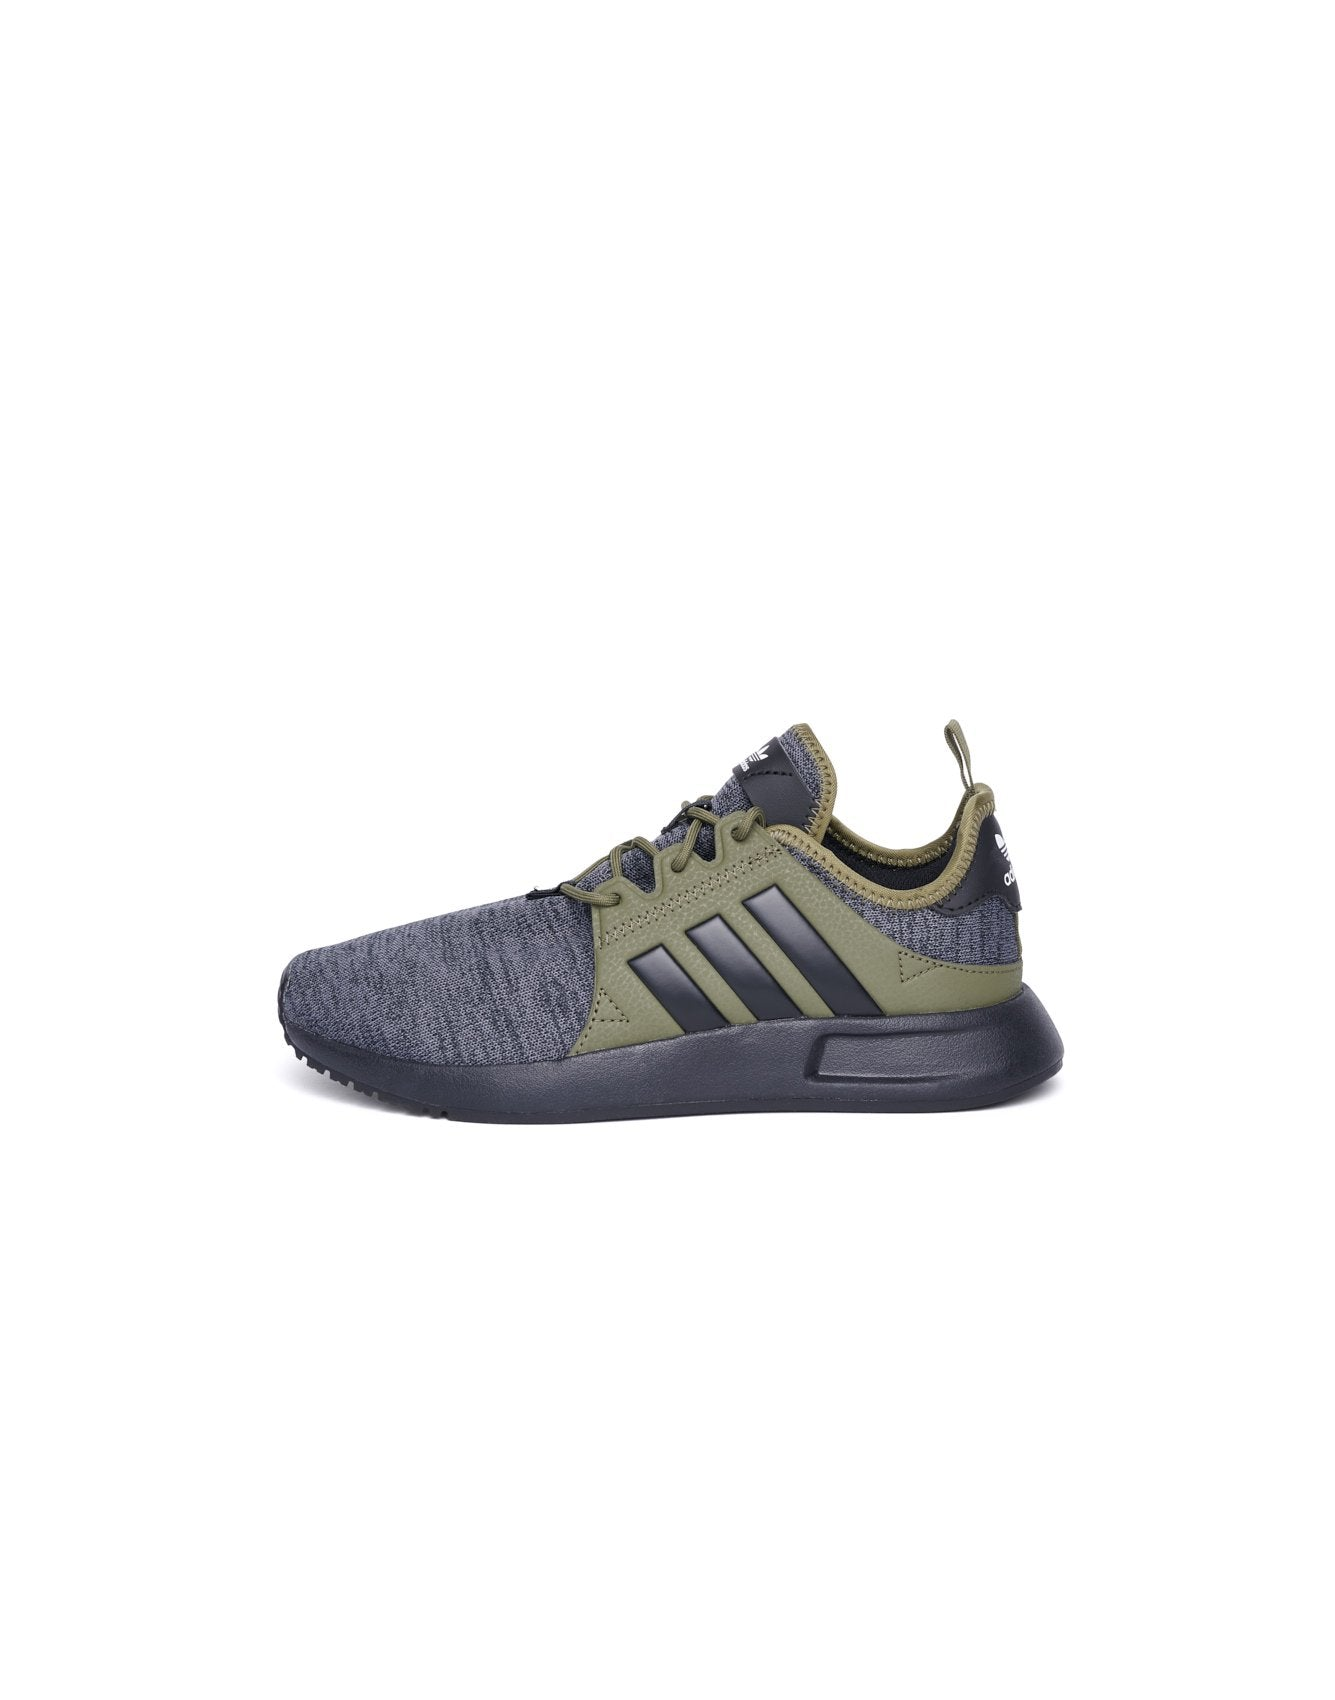 separation shoes ea7bc b238d Adidas XPLR unior  Spring-Summer19 collection  Bellerose